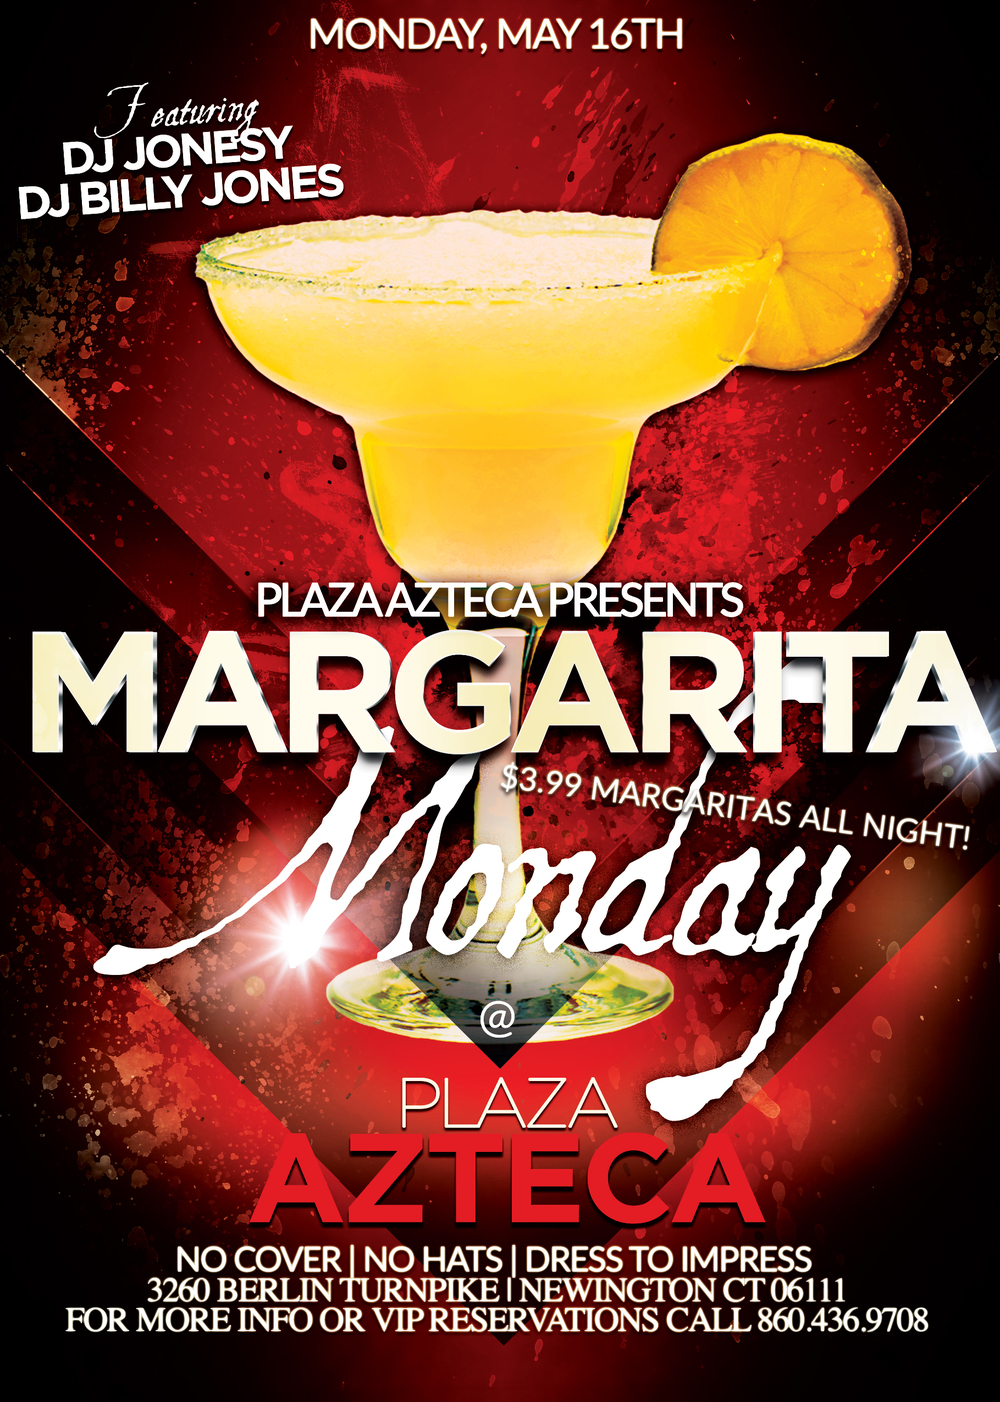 Monday, May 16th join me at Plaza Azteca in Newington, CT for Margarita Monday with music by Billy Jones & yours truly 9pm-close. $3.99 Margaritas all night long! Meet me there!